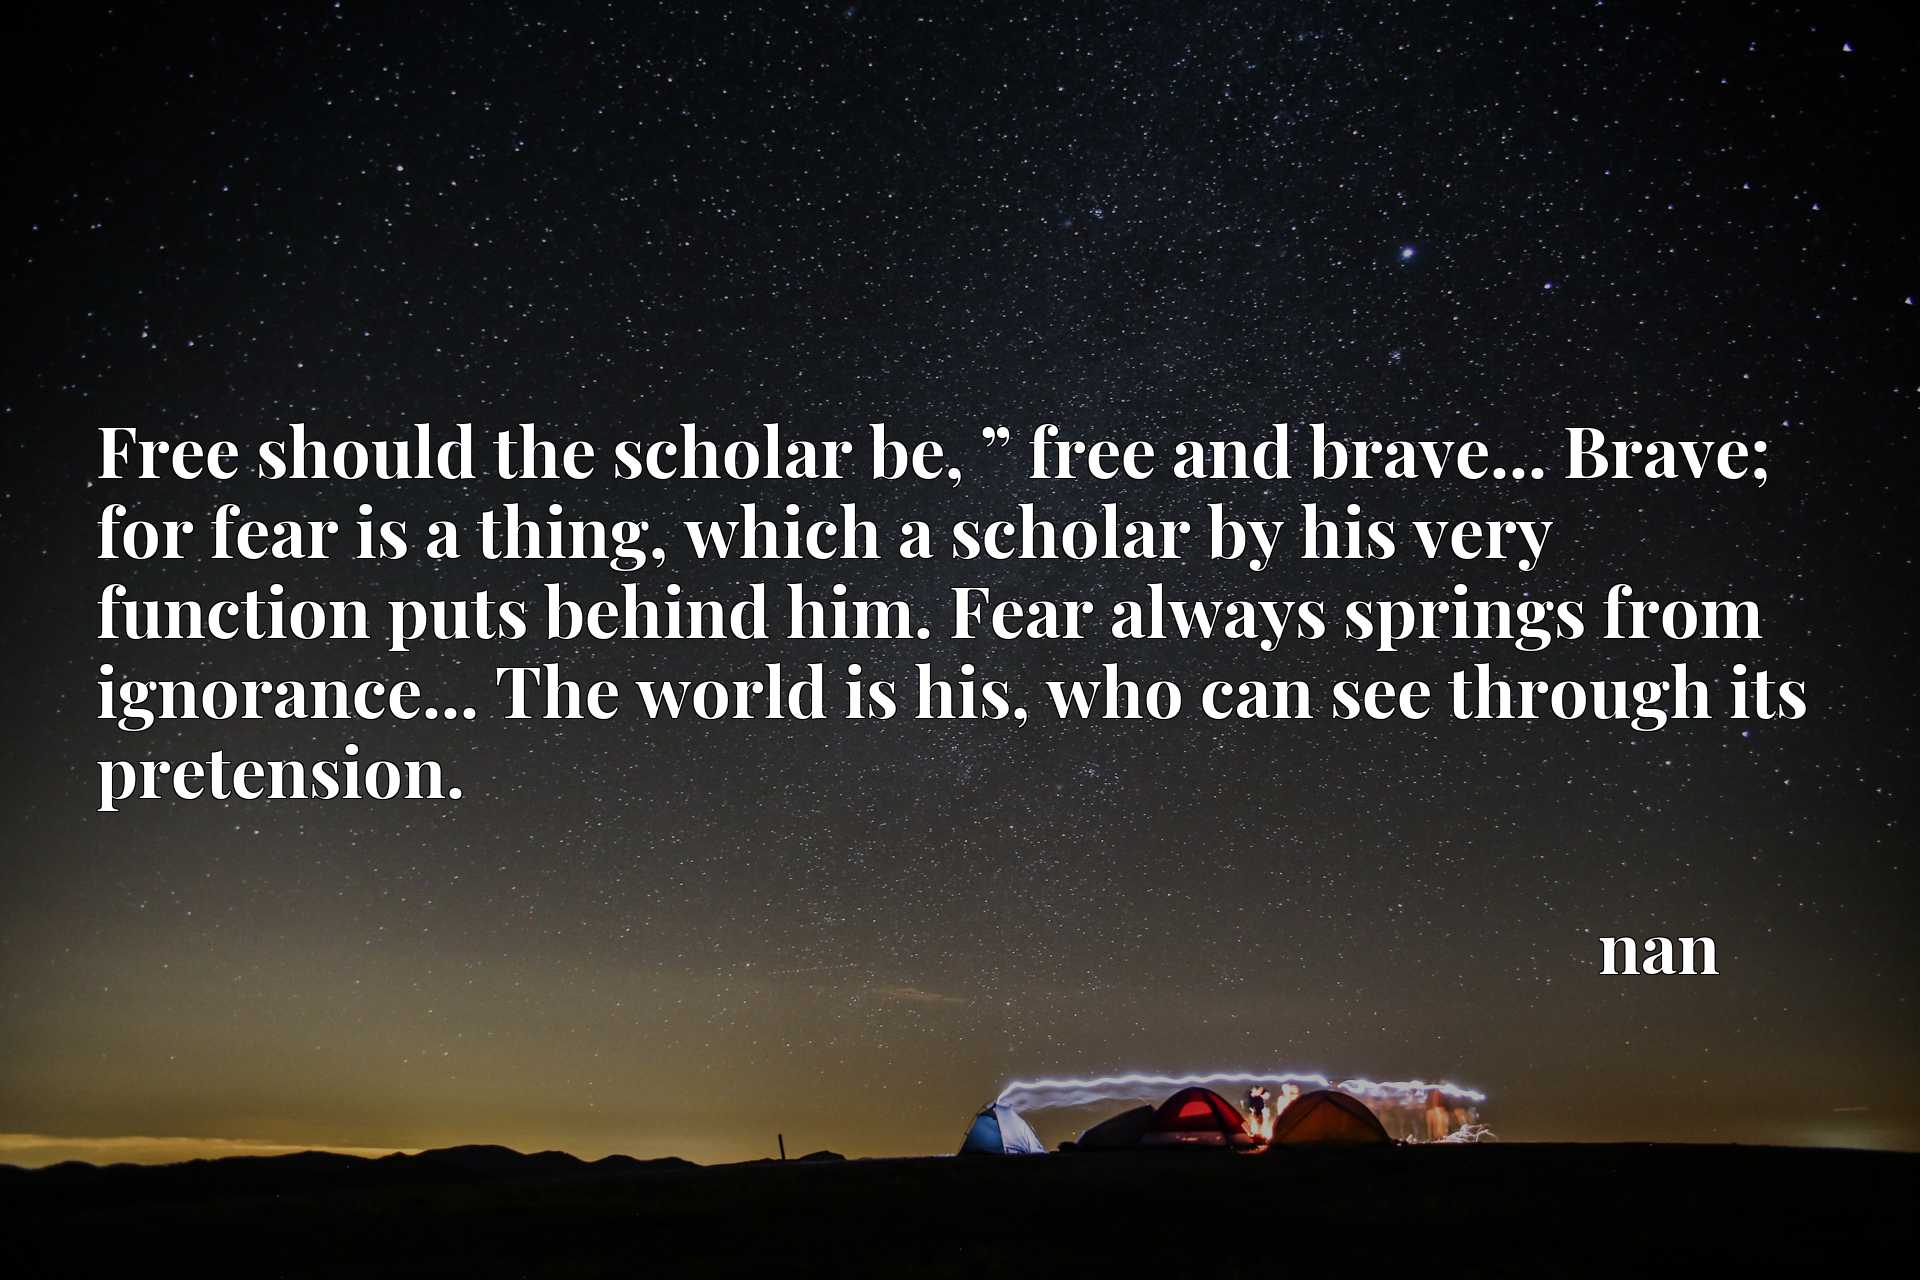 """Free should the scholar be, """" free and brave... Brave; for fear is a thing, which a scholar by his very function puts behind him. Fear always springs from ignorance... The world is his, who can see through its pretension."""